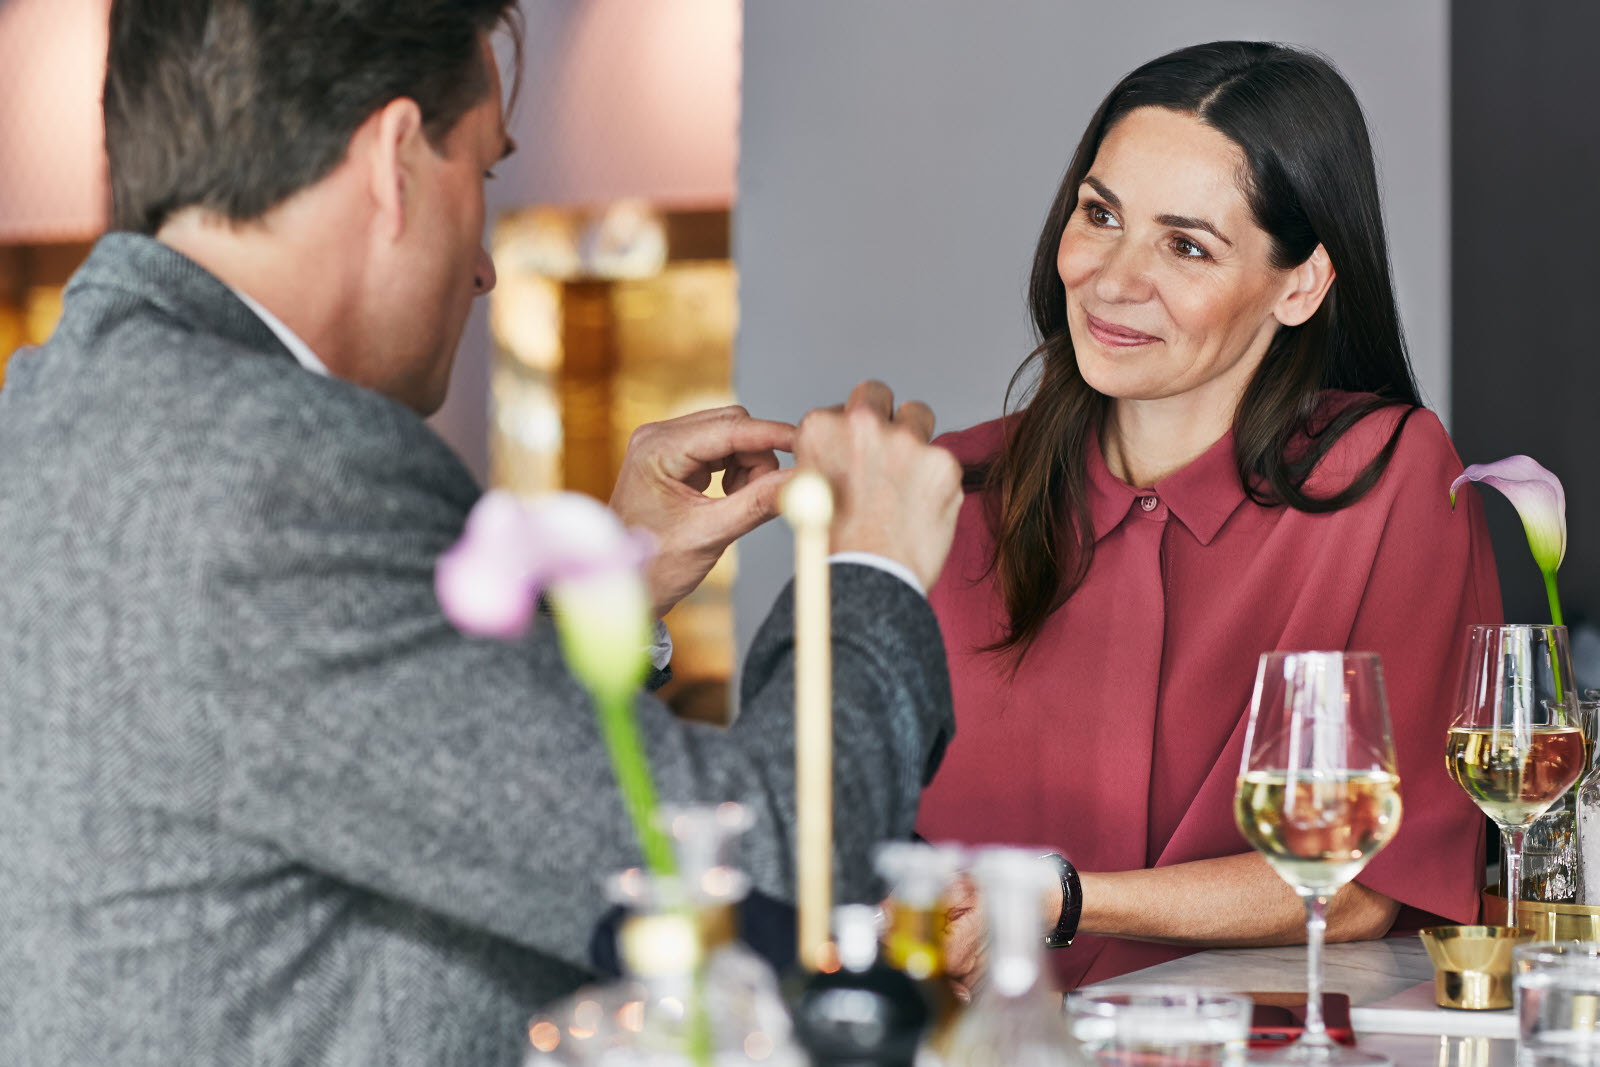 ccc, spring 2014, Rubinen, bar, restaurant, couple, romantic, after work, socialising, wine